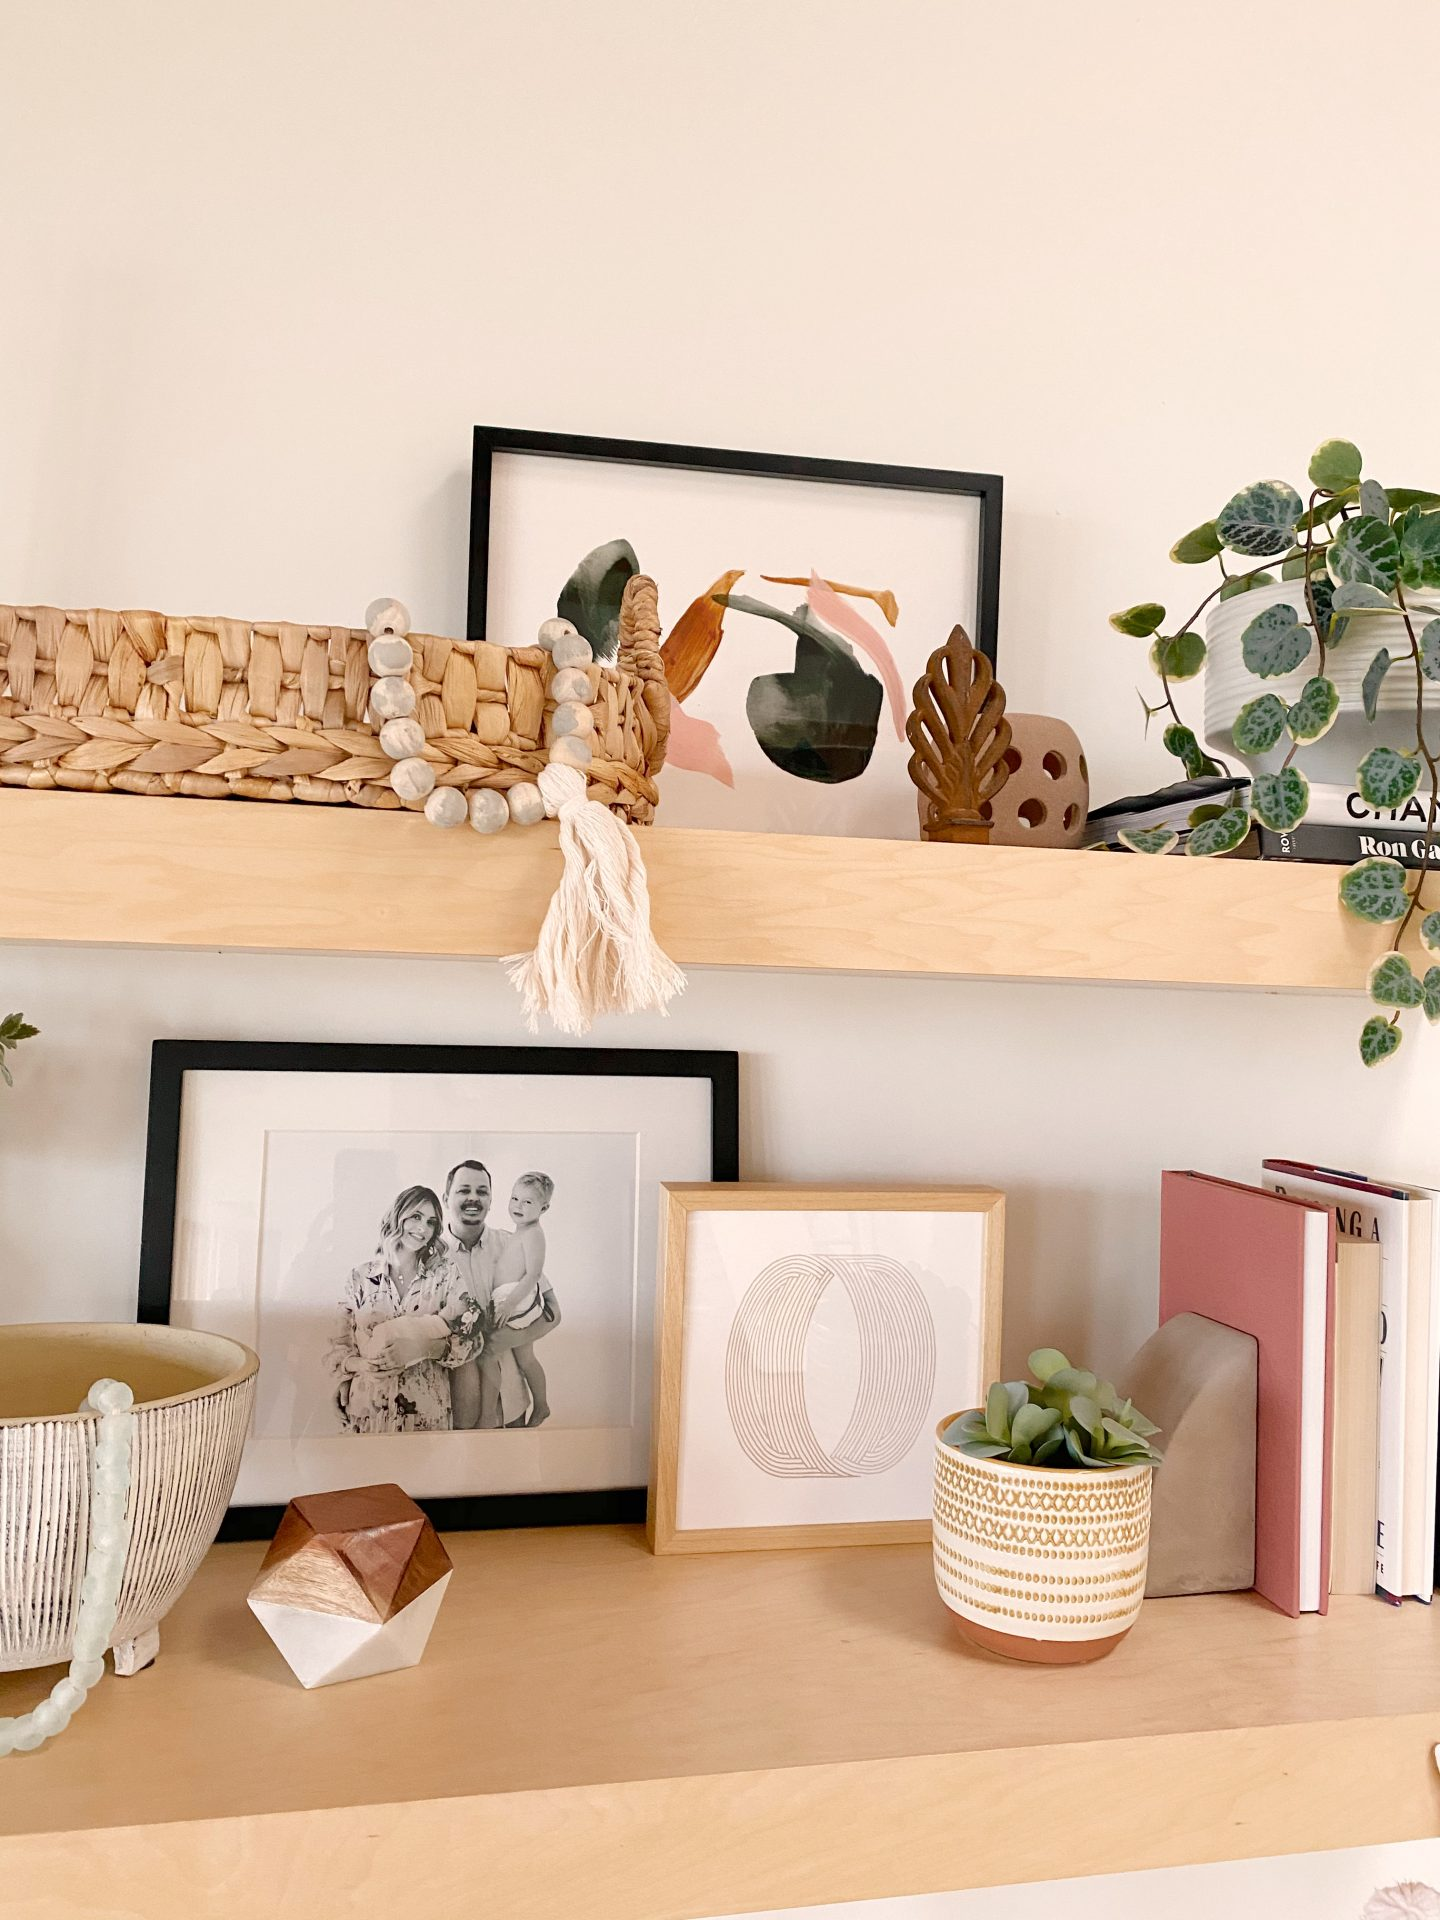 Minted Art by popular life and style blog, Navy Grace: image of a framed Minted Calm Forest print and Minted Thumbprint art work on wooden shelves with woven baskets, wooden and marble knick knacks, books, and house plants.